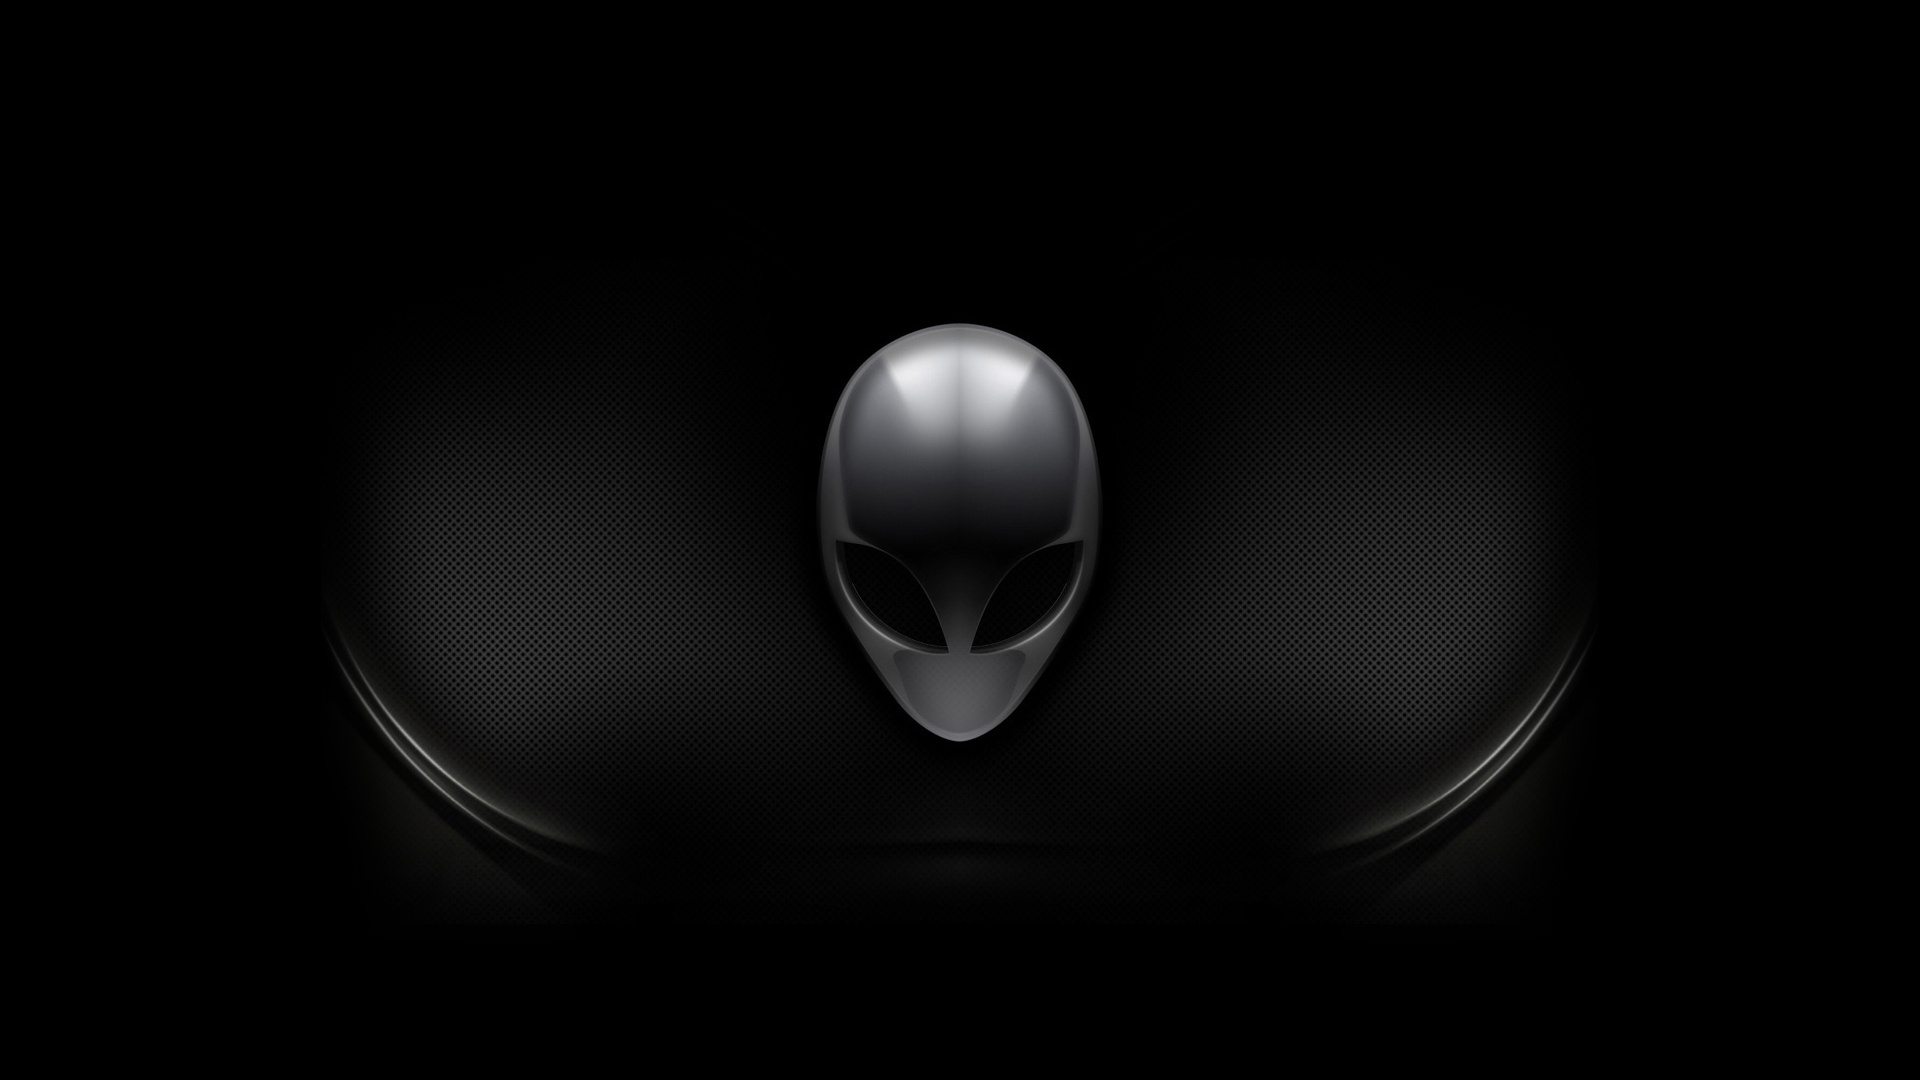 fantastic alienware wallpaper 45191